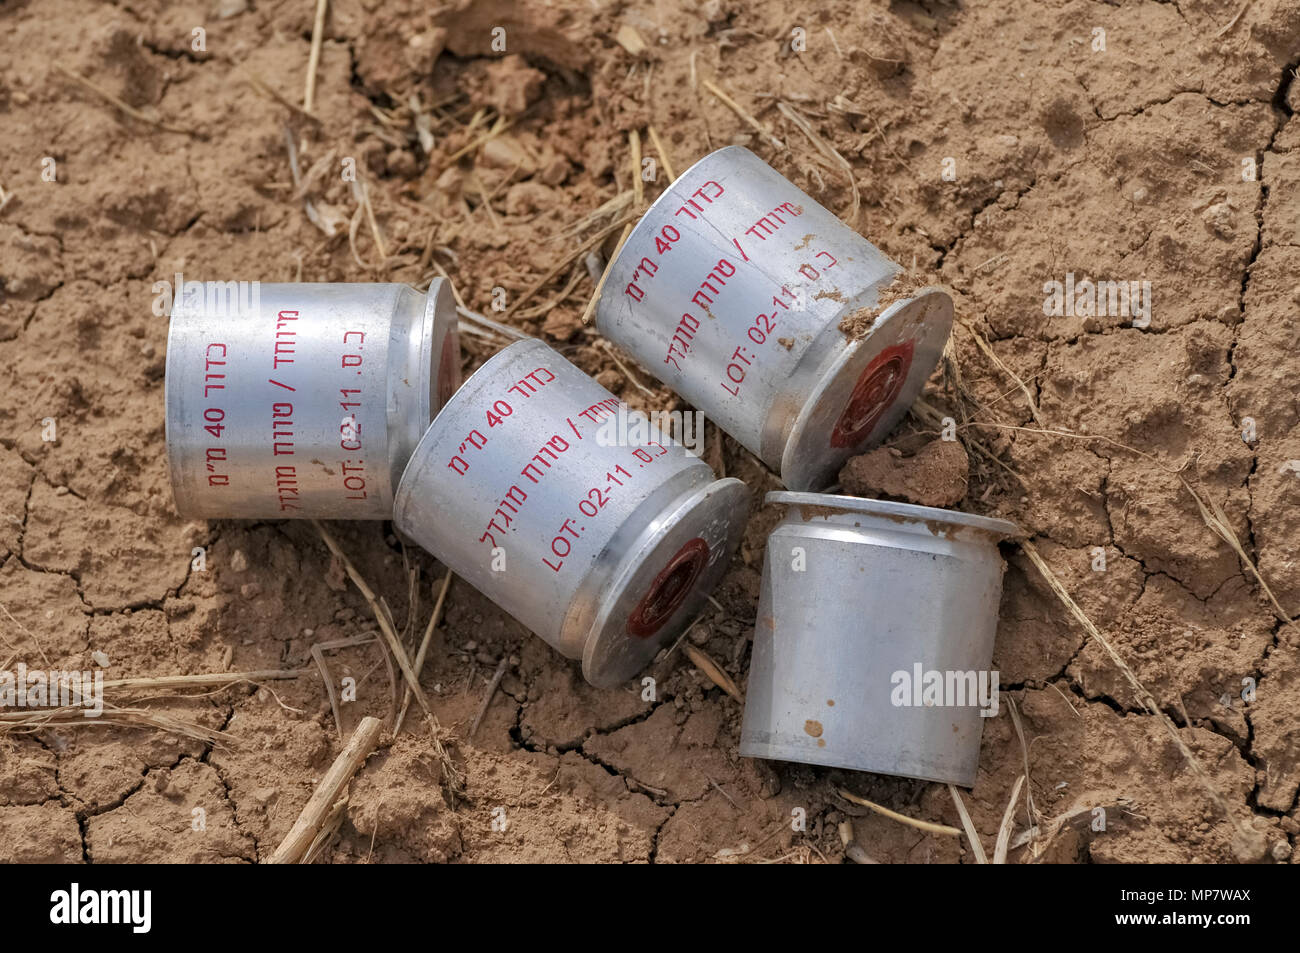 Tear gas canisters used by the Israeli Defence Force (IDF). Photographed on the Israeli Gaza border - Stock Image